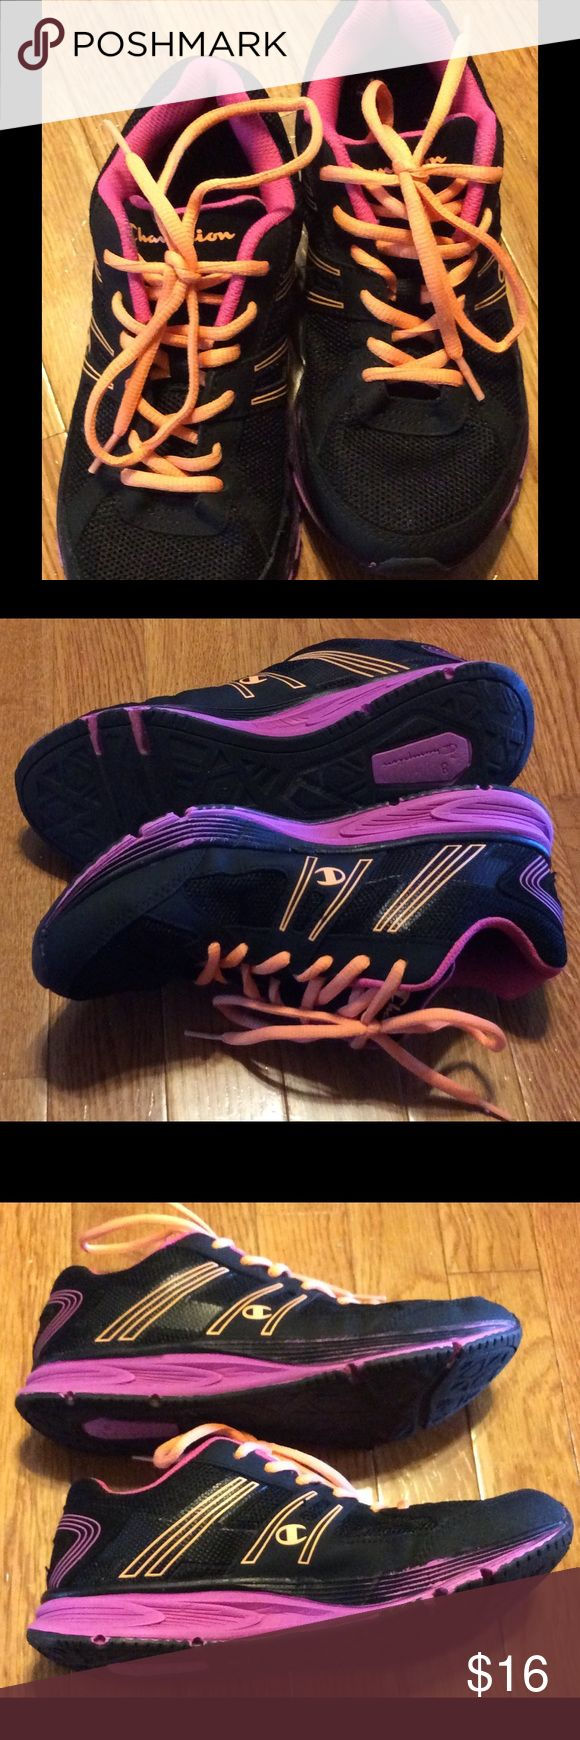 Champion Shoes size 8 Gently used, in good condition Champion Shoes Athletic Shoes